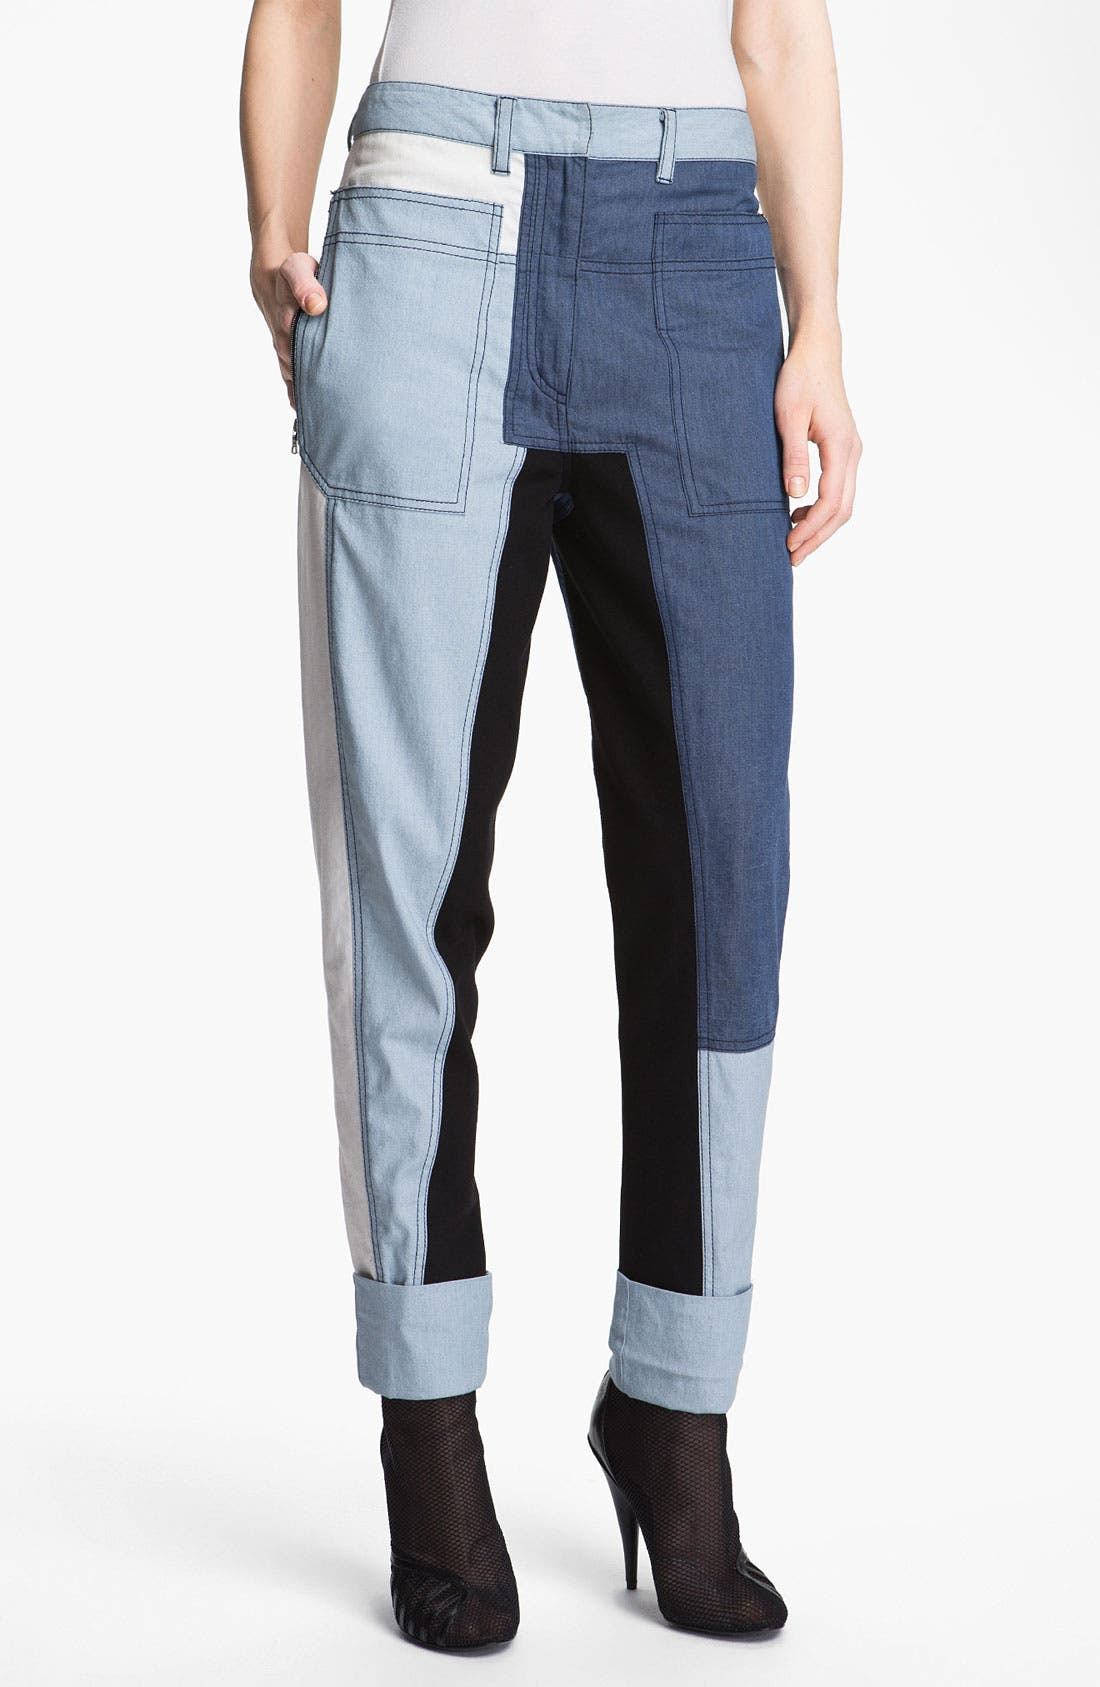 Alternate Image 1 Selected - 3.1 Phillip Lim 'Cut Up' Denim Pants